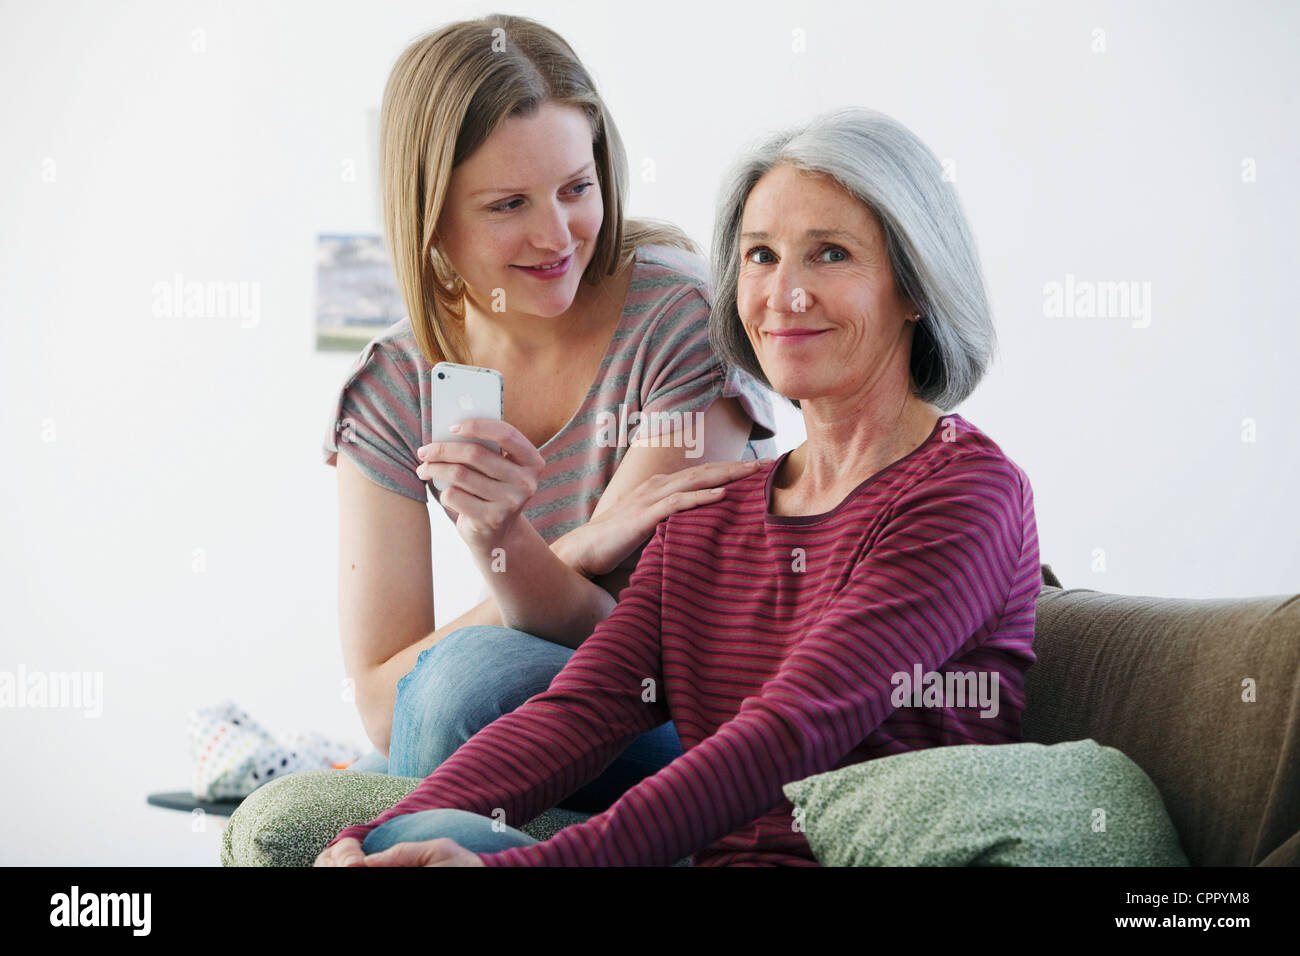 ELDERLY PERSON & ADOLESCENT - Stock Image